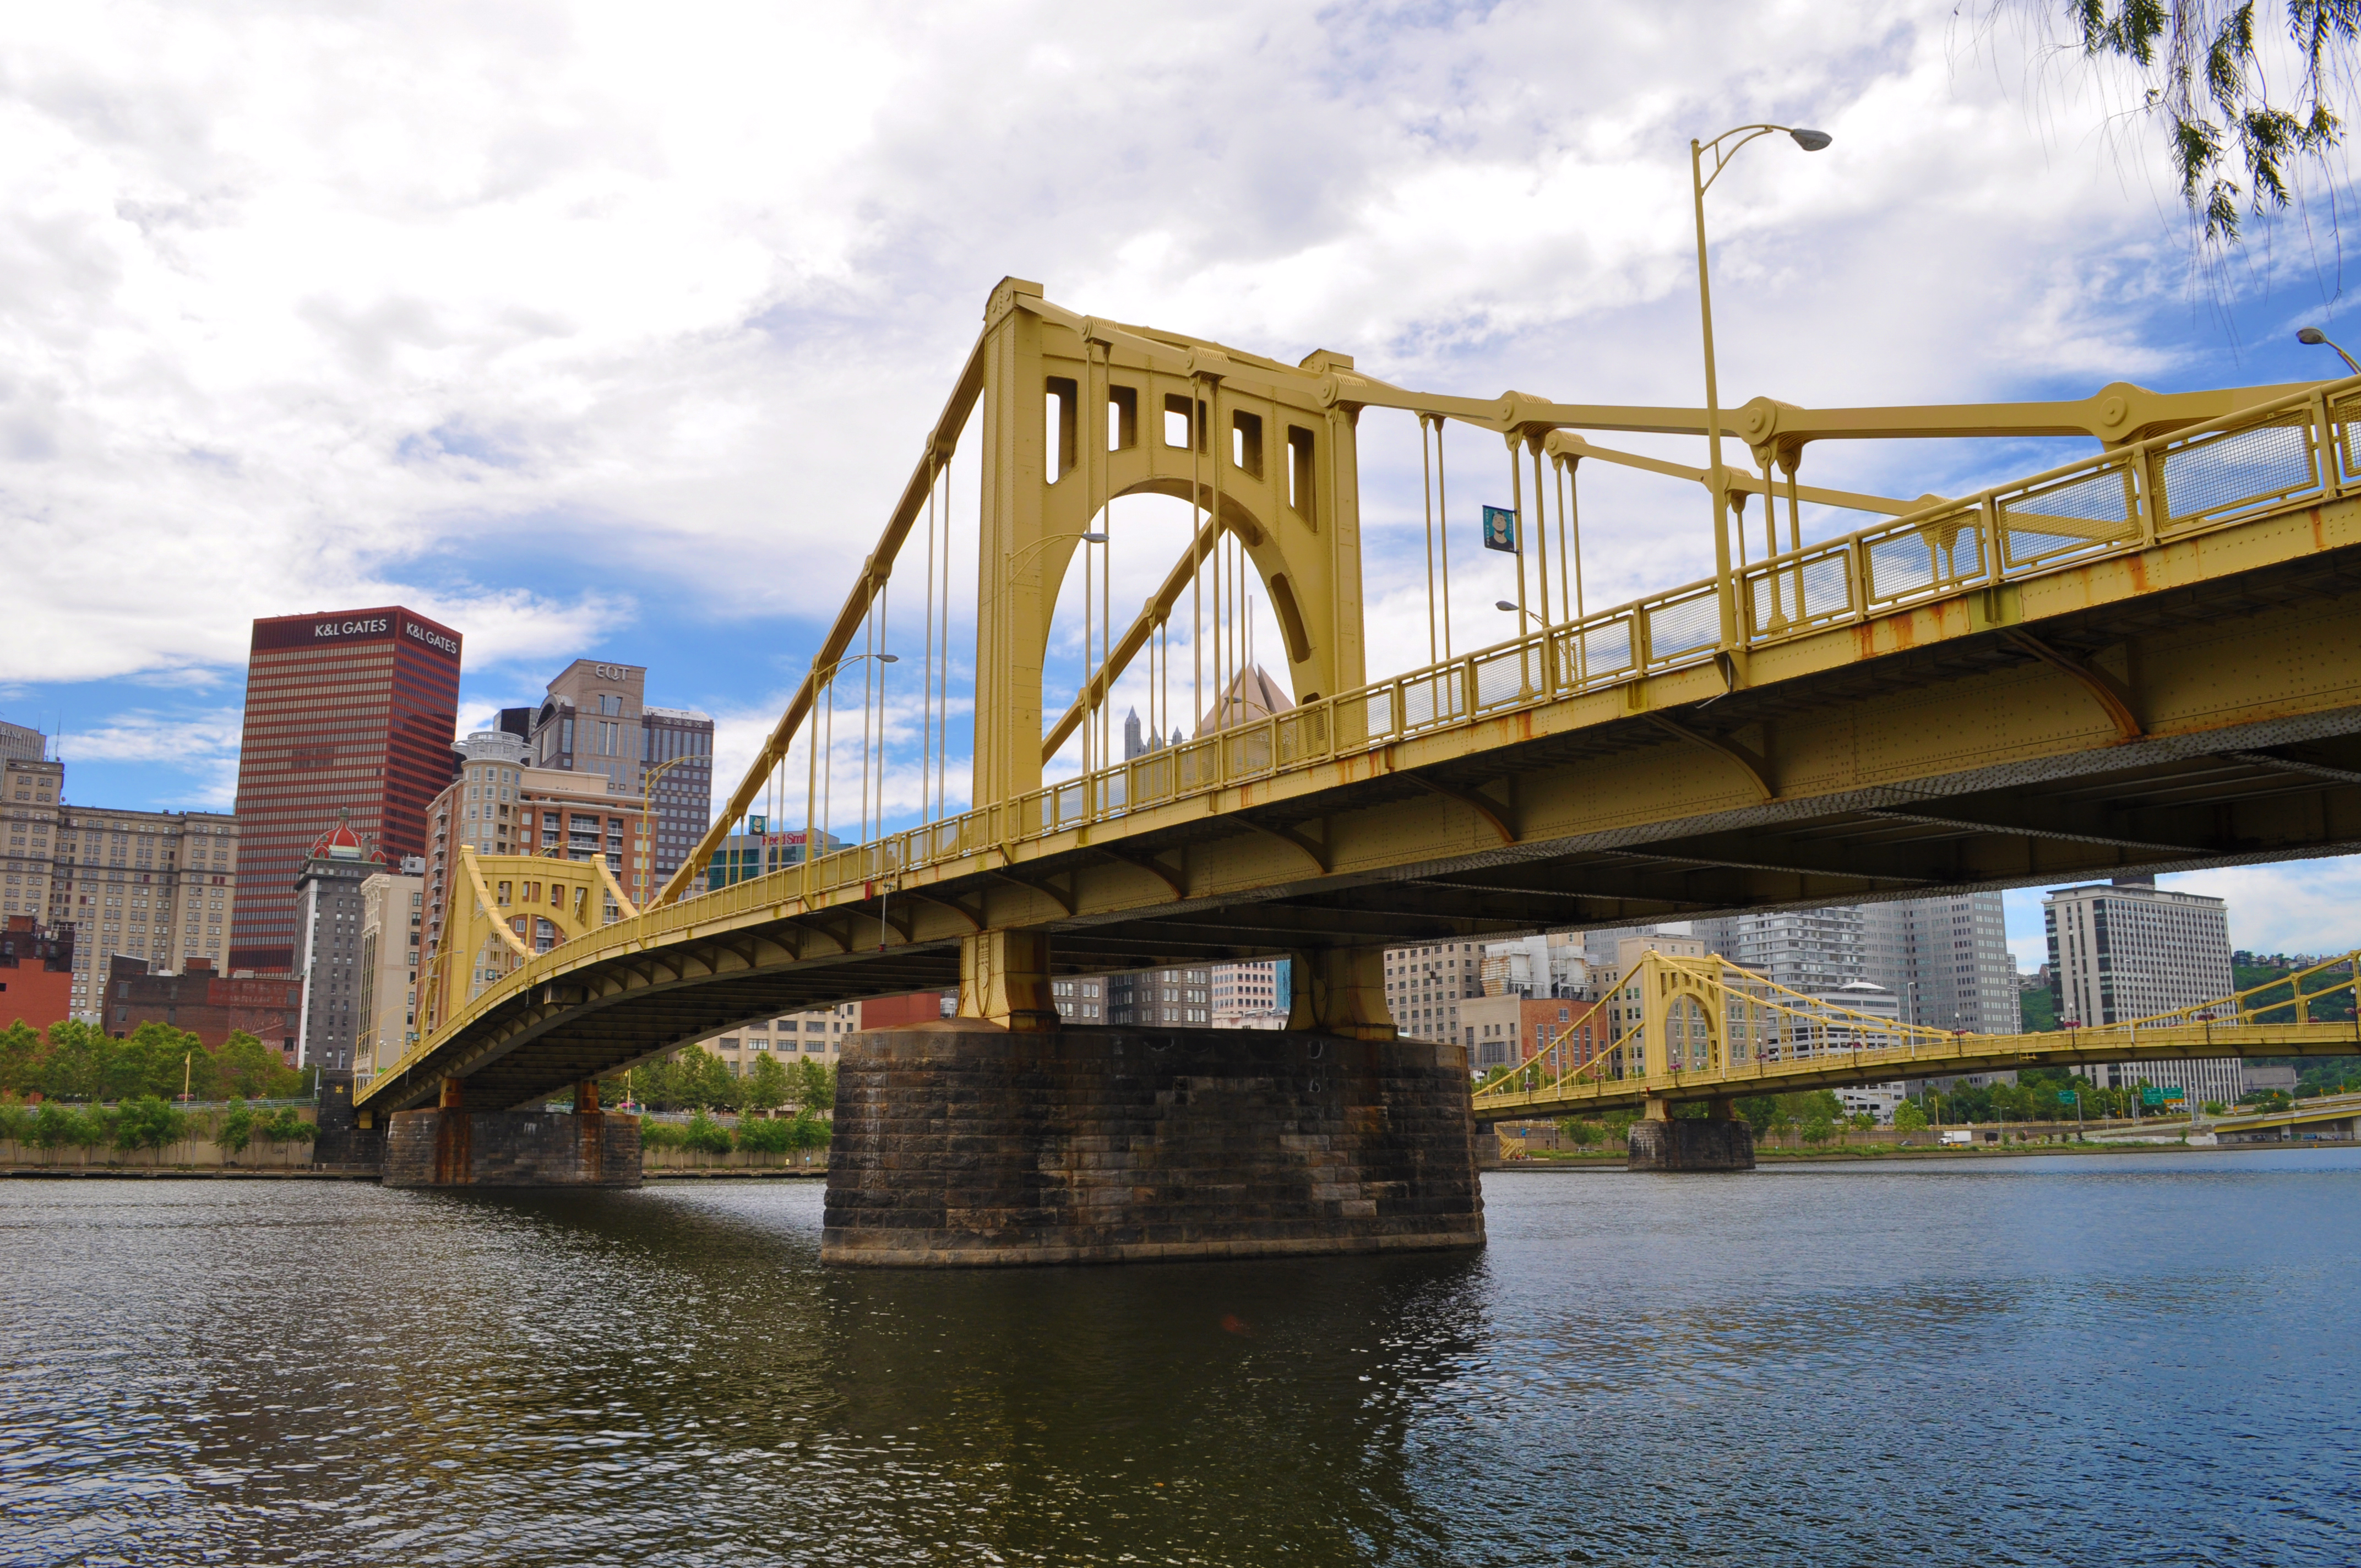 The Andy Warhol Bridge spans the Allegheny River and connects downtown Pittsburgh with its North Shore.  The Roberto Clemente Bridge can be seen in the background.